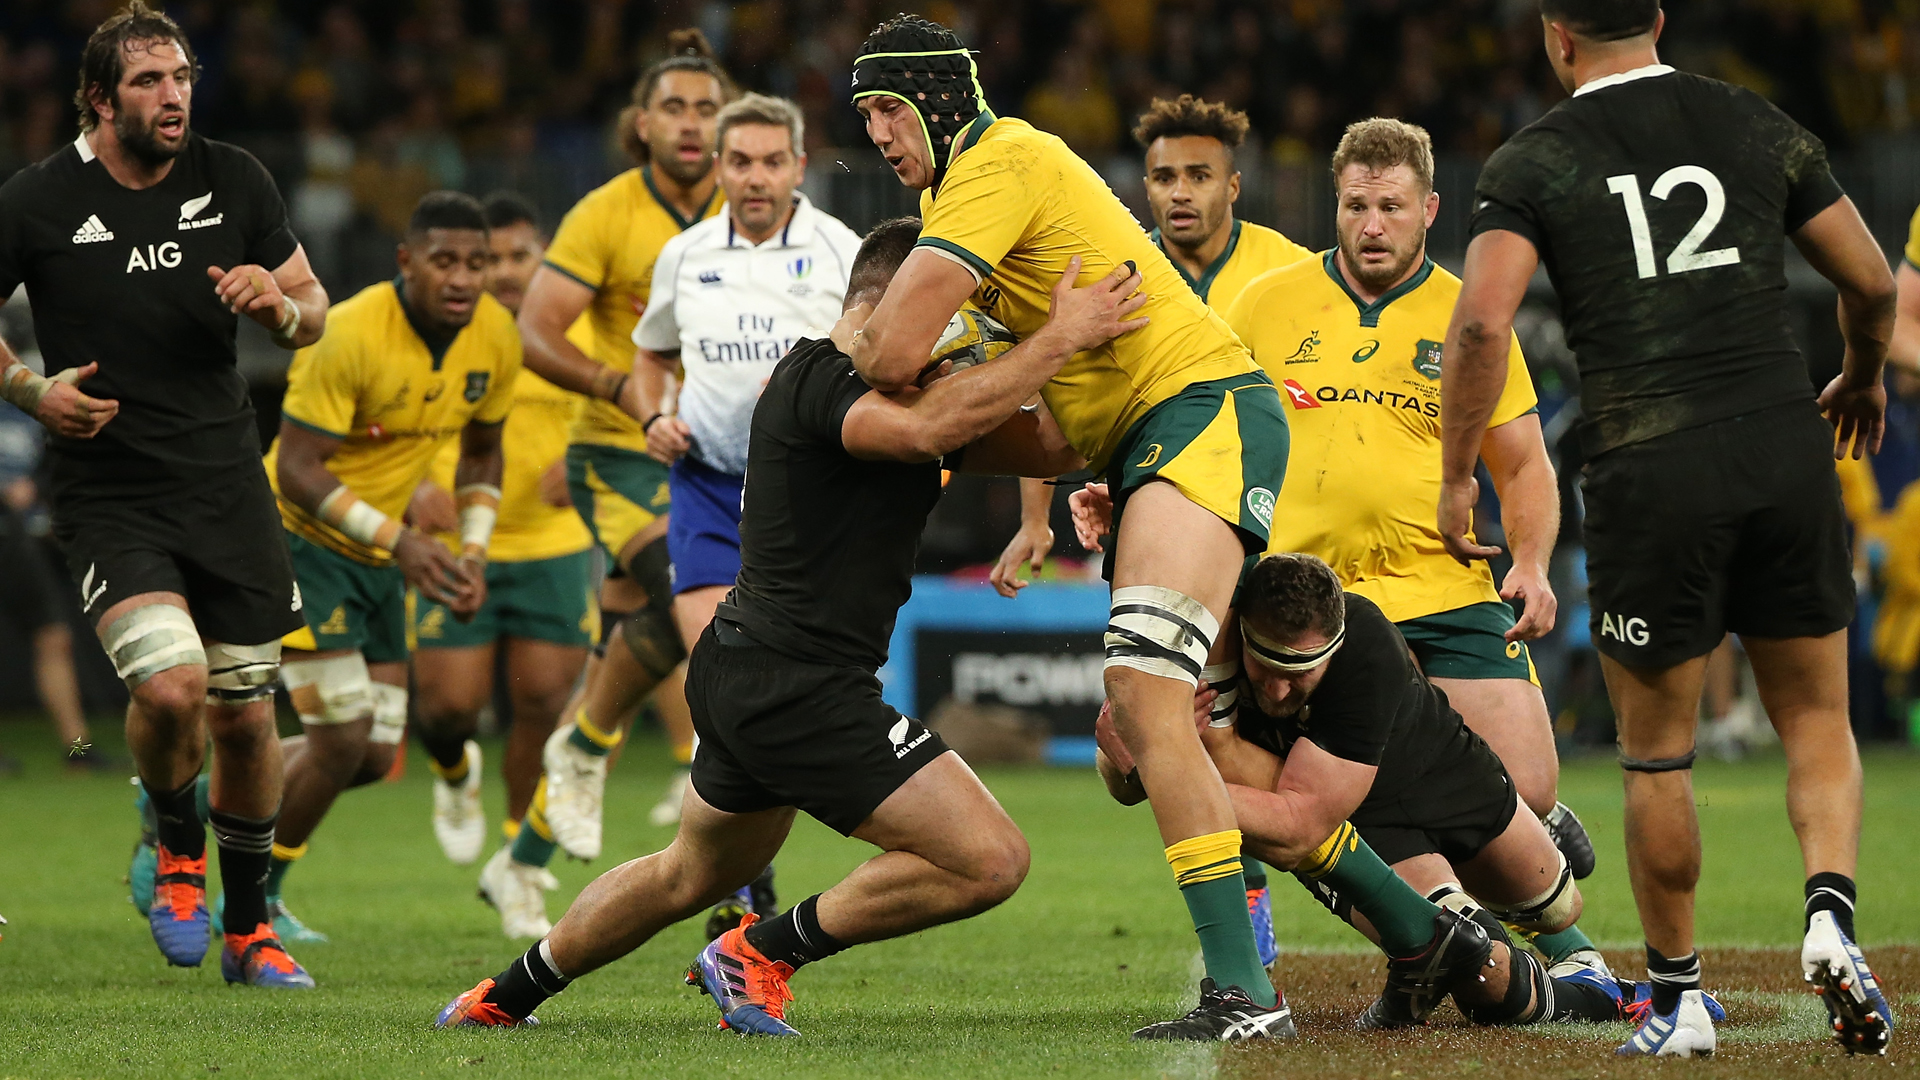 Australia have made one change to their starting team to face the All Blacks, with Adam Coleman replacing Rory Arnold.